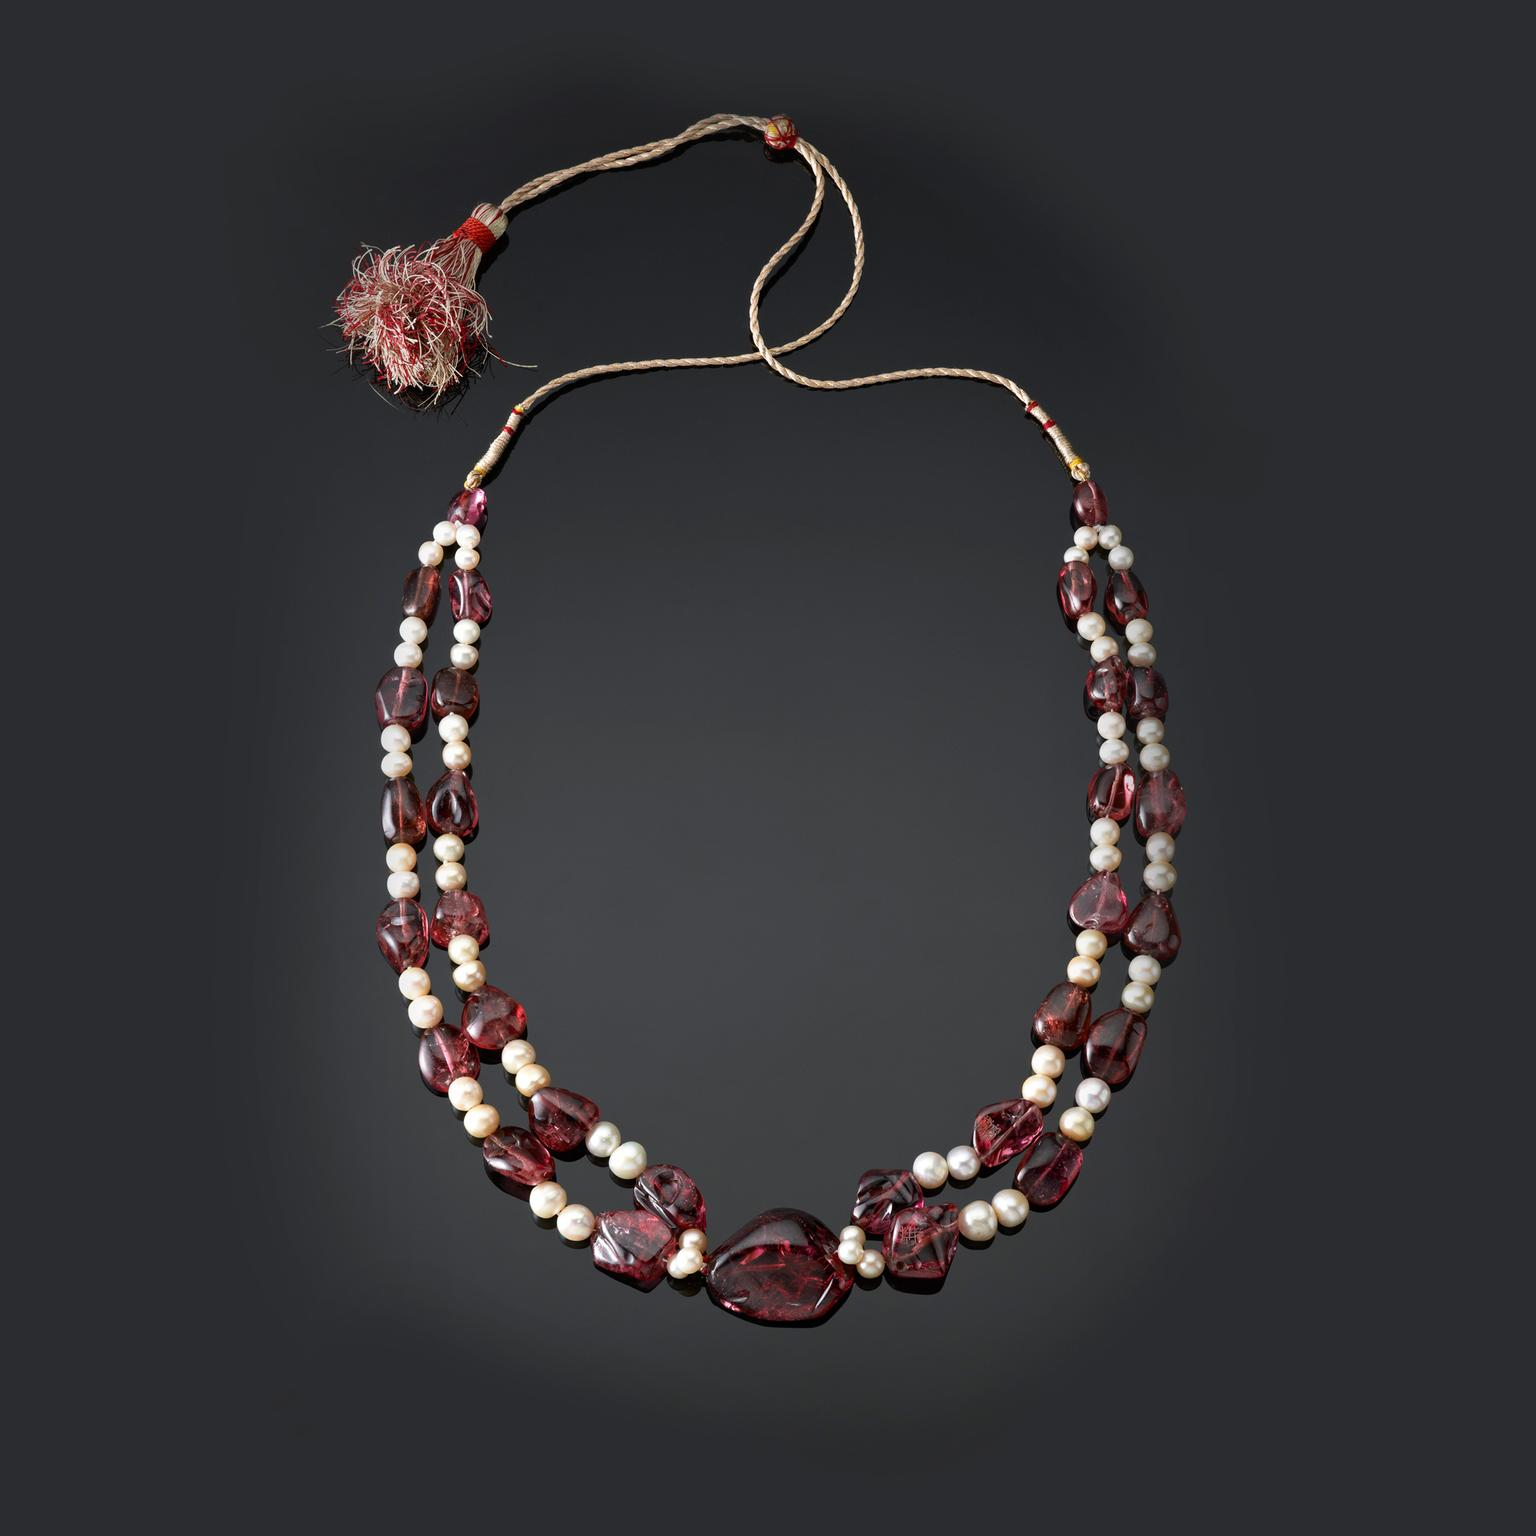 Mughal Empire spinel and pearl necklace